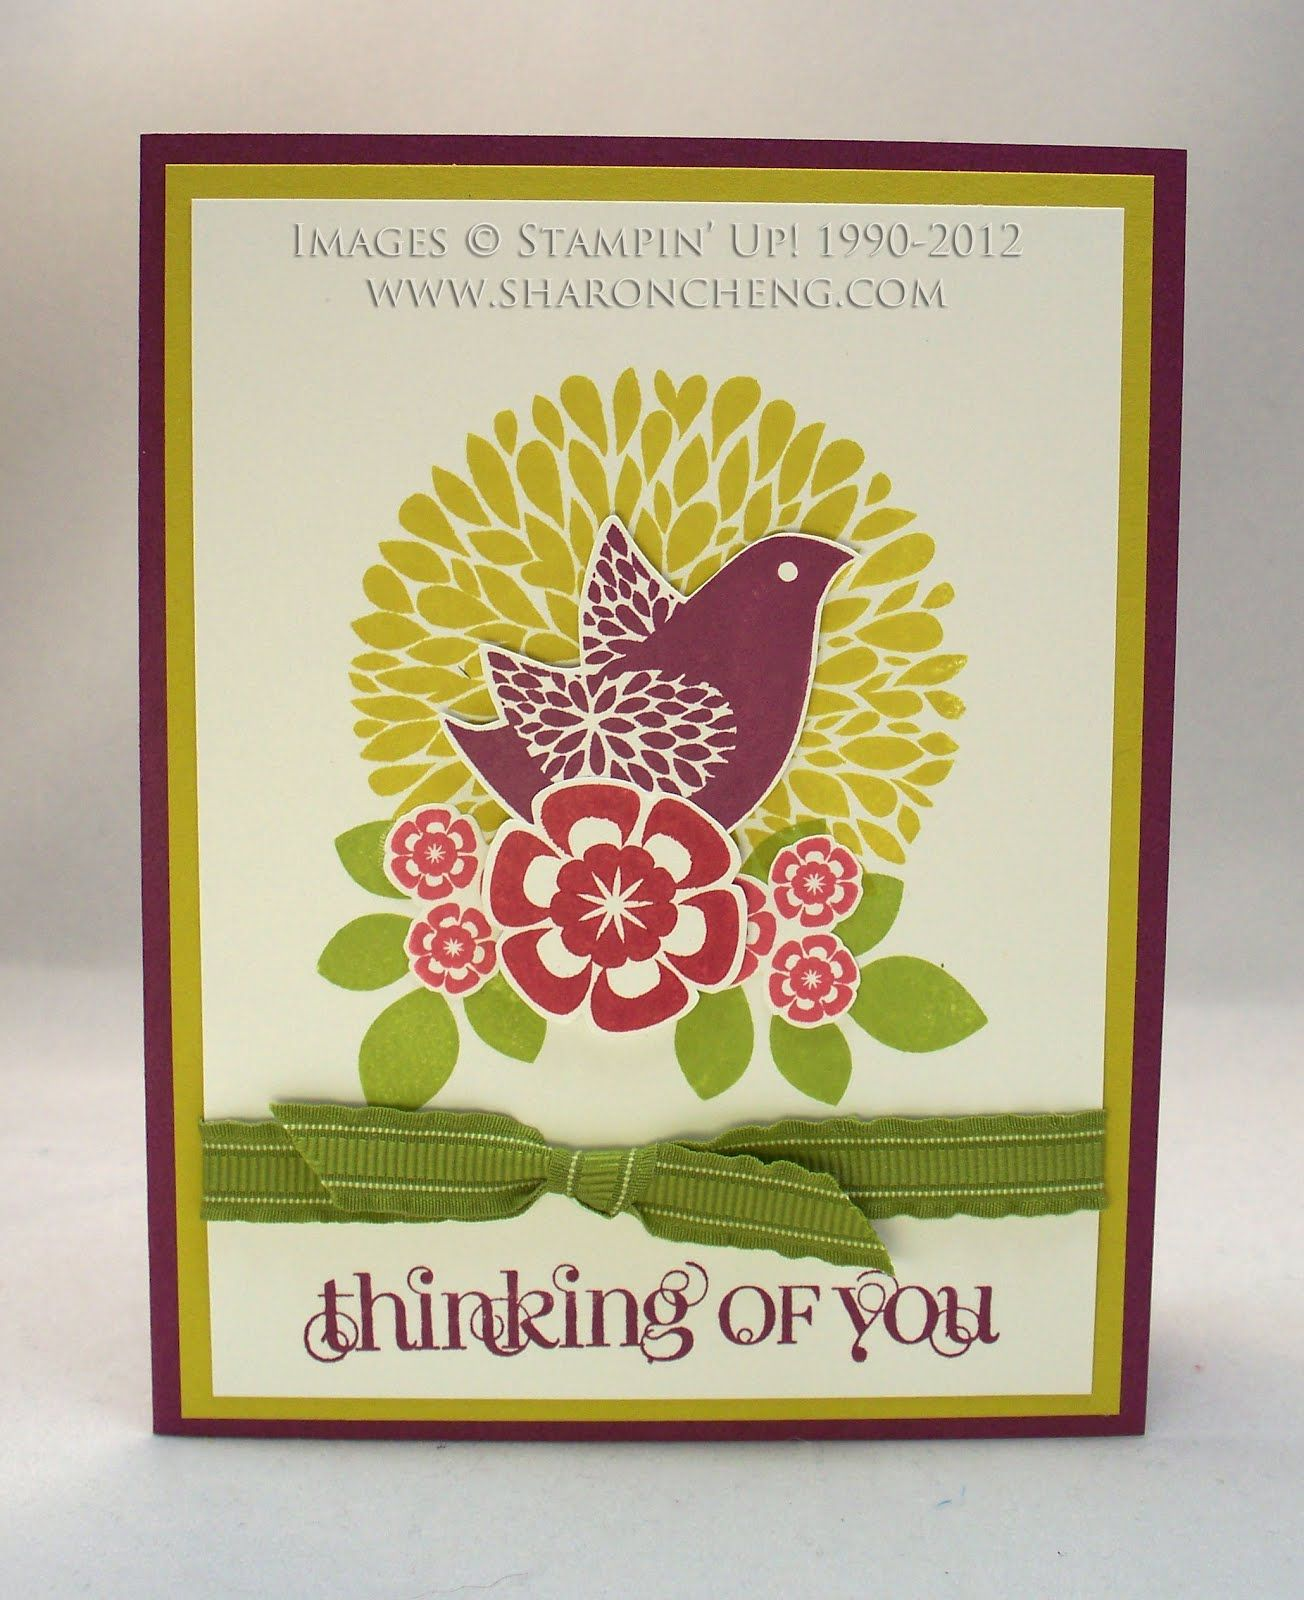 Sharing Creativity And Company Top 10 Reasons To Choose Stampin Up